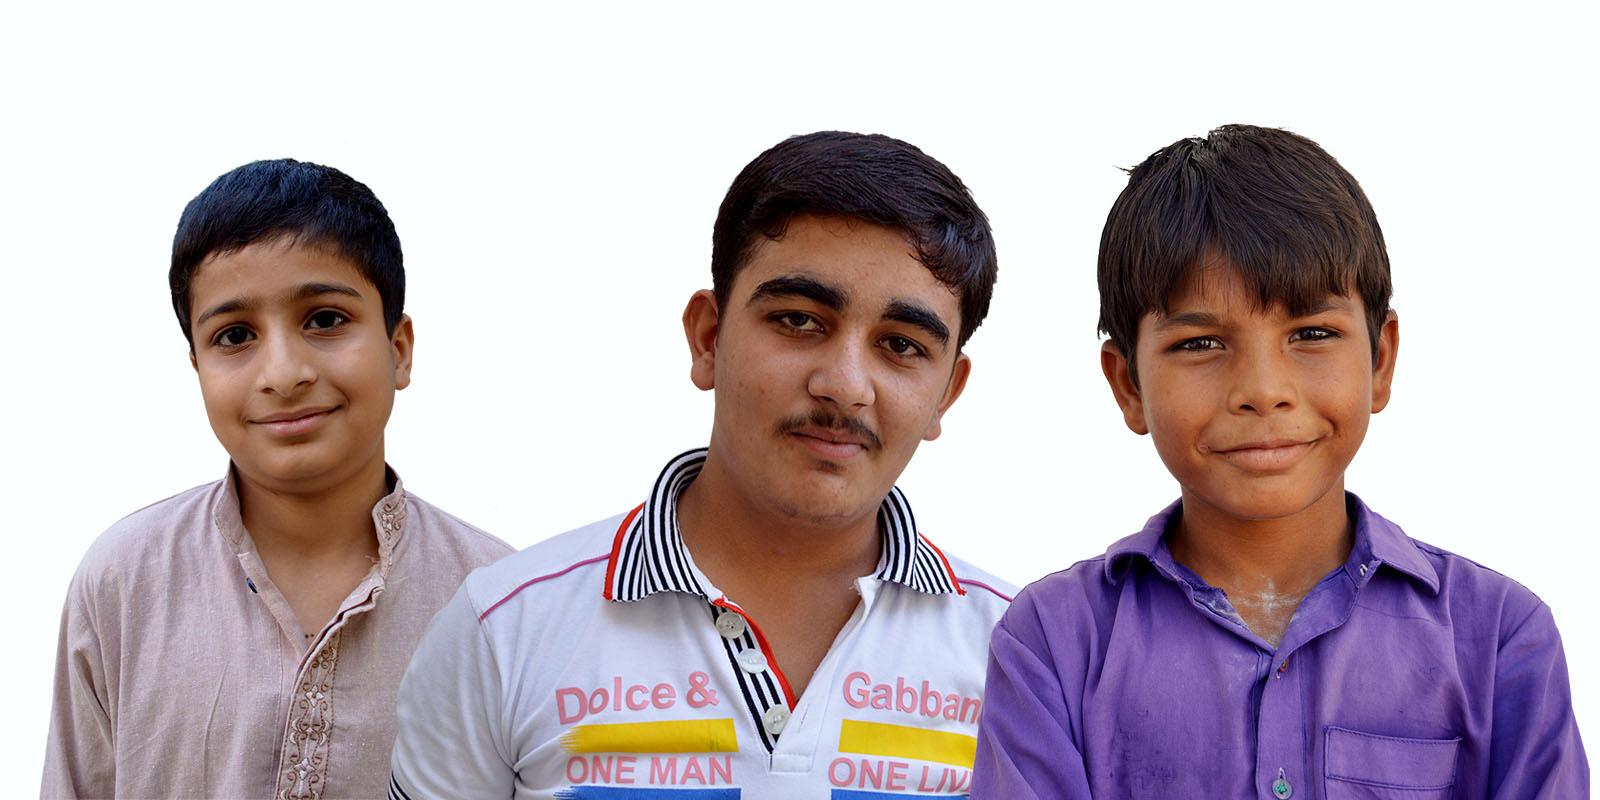 Portraits of three boys, Haseed, Ali and Baber.